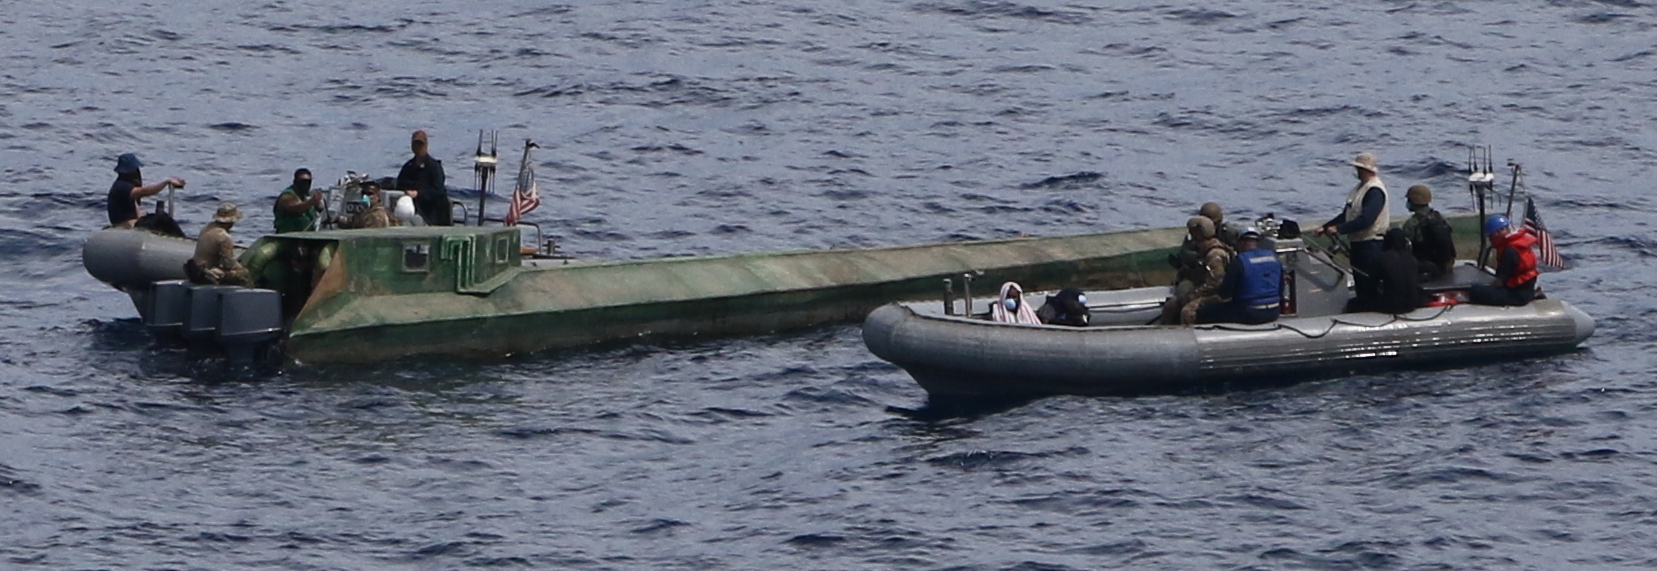 USS Preble with 100 bales of cocaine from a low-profile go-fast vessel in the eastern Pacific